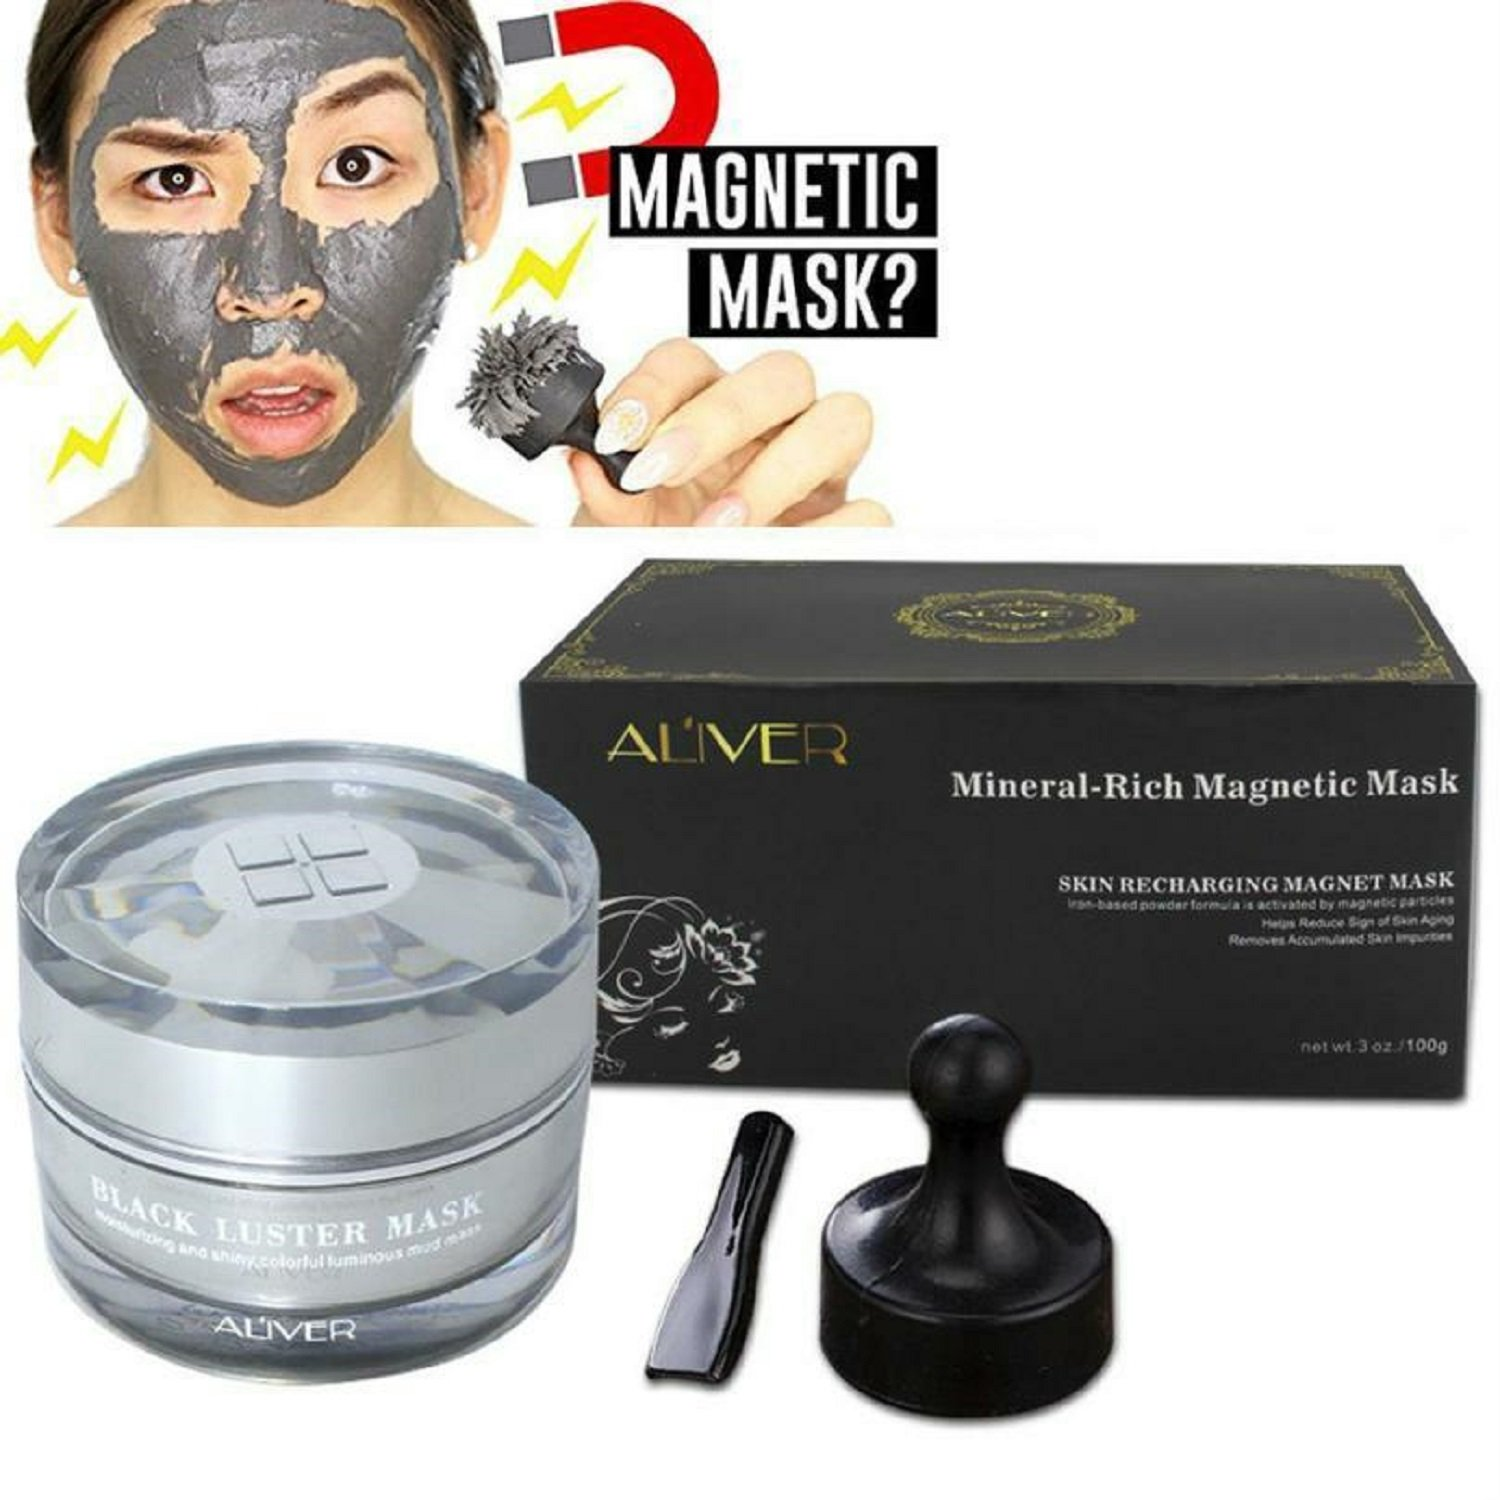 Aliver Black Luster Magnetic Mask Mineral-Rich Magnetic Face Mask Pore Cleansing Removes Skin Impurities 50ml